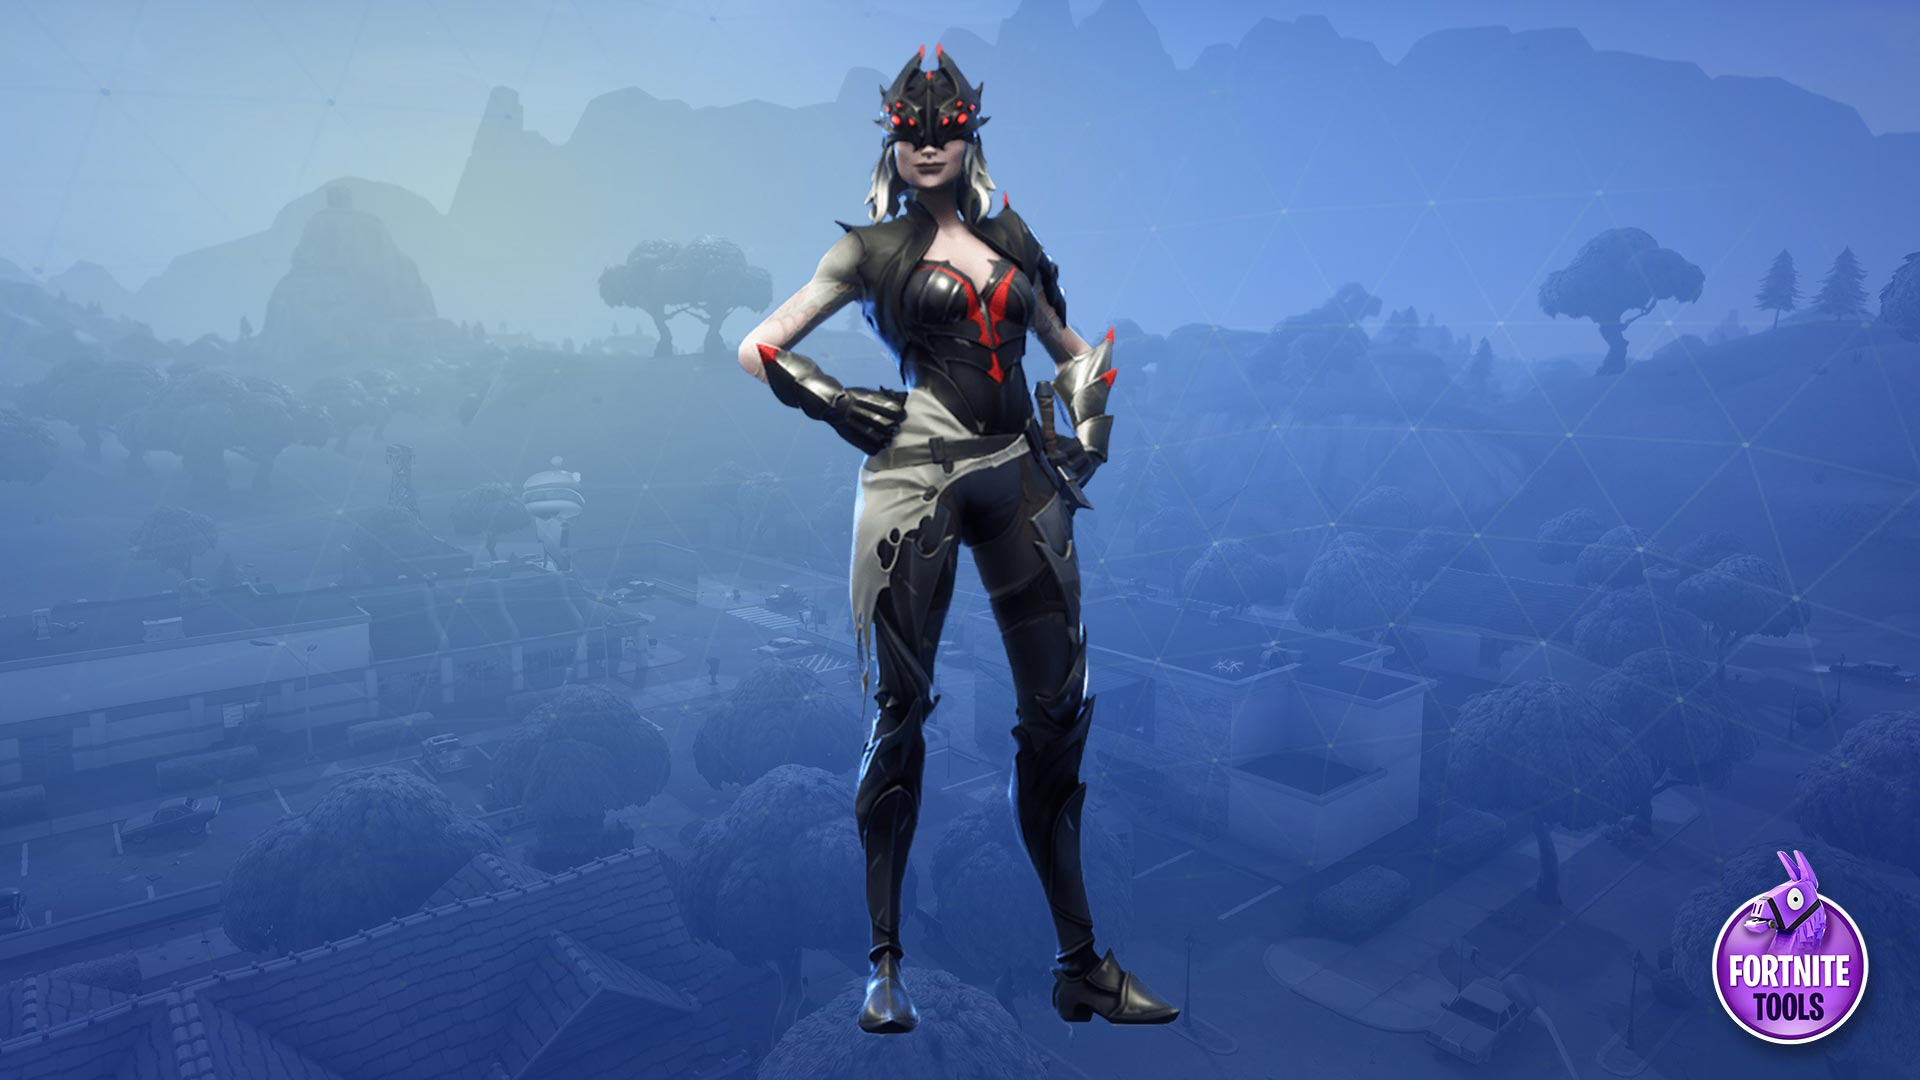 Marvelous Fortnite Battle Royale Arachne Skin Wallpaper